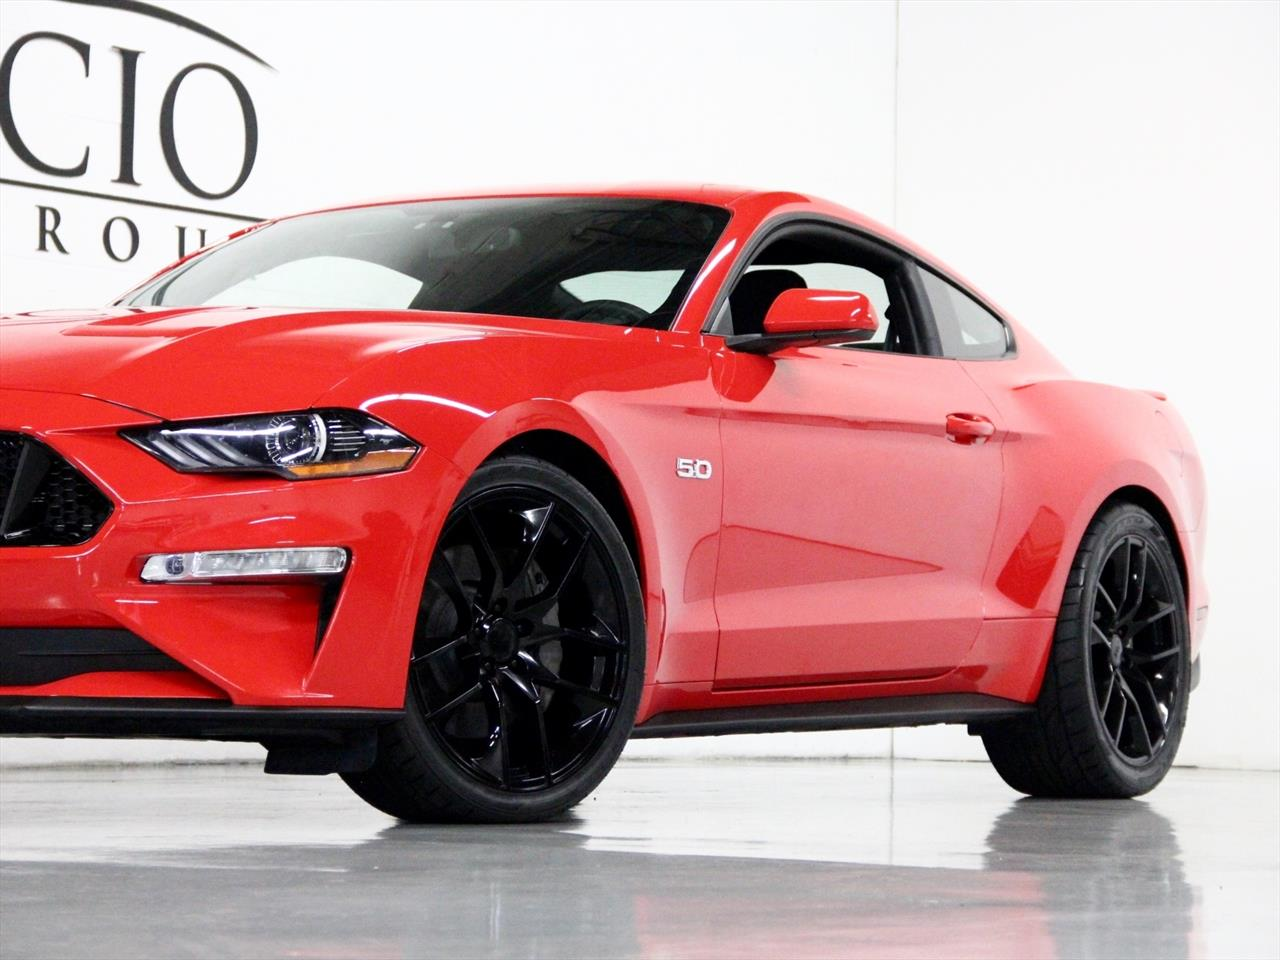 2018 Ford Mustang 5.0 Rousch SuperCharged (700 HP)